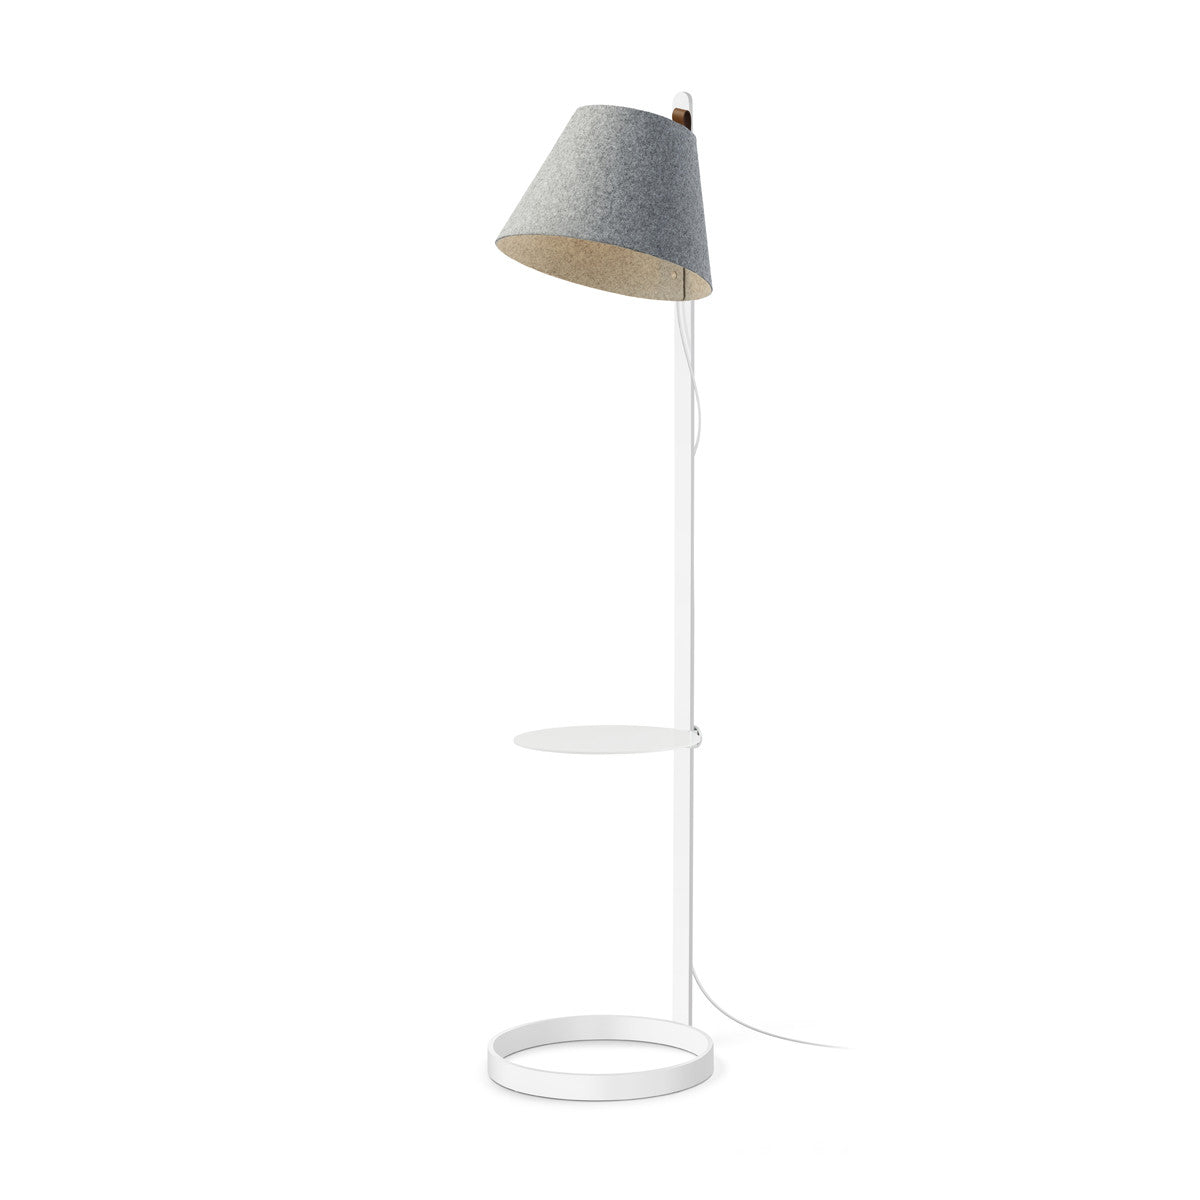 Lana Floor Lamp by Pablo - Emmo Home